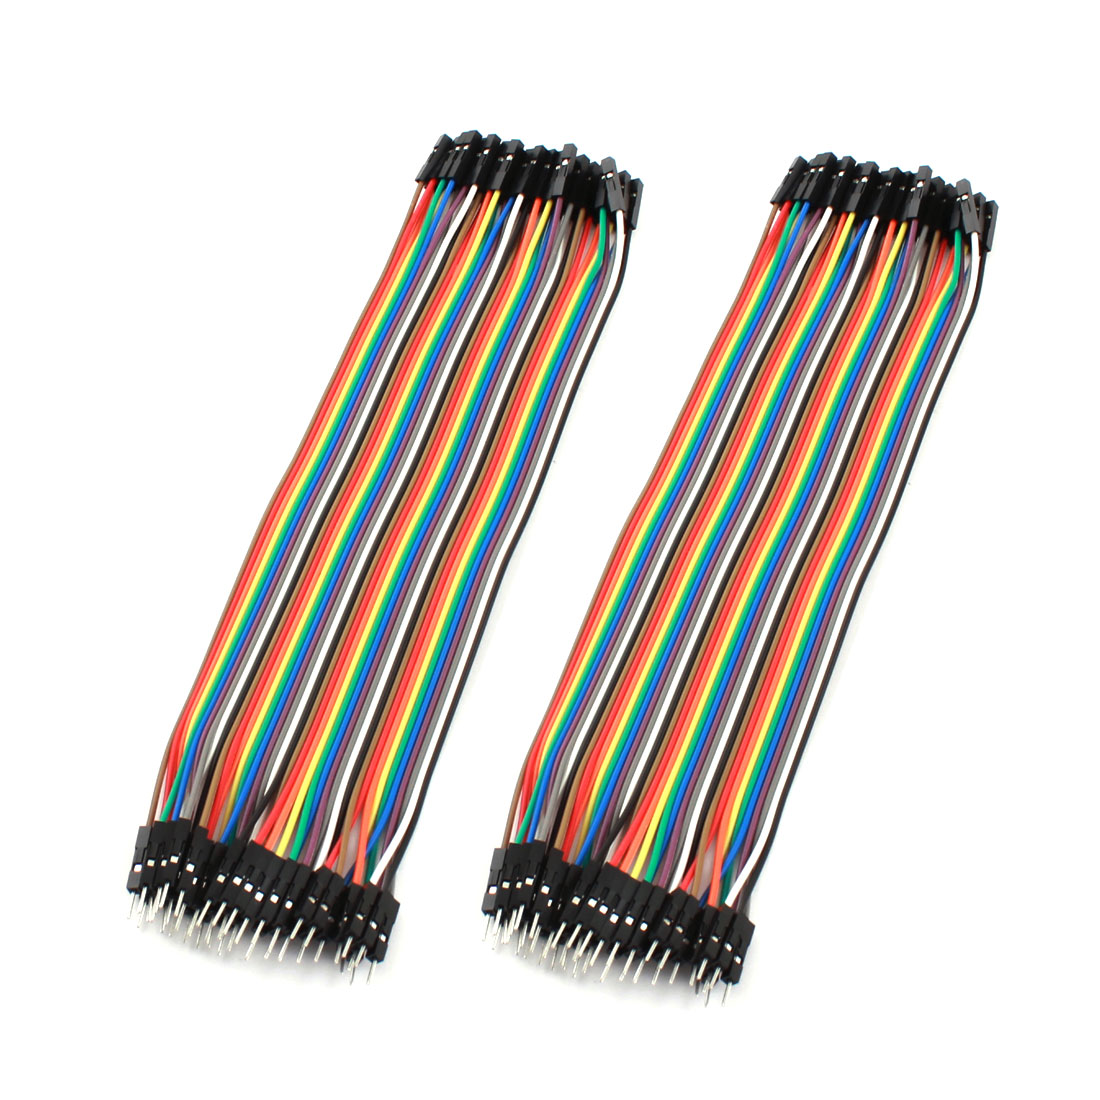 2pcs 40P-40P Female to Male Breadboard Connect Test Jumper Cable Wire 20cm